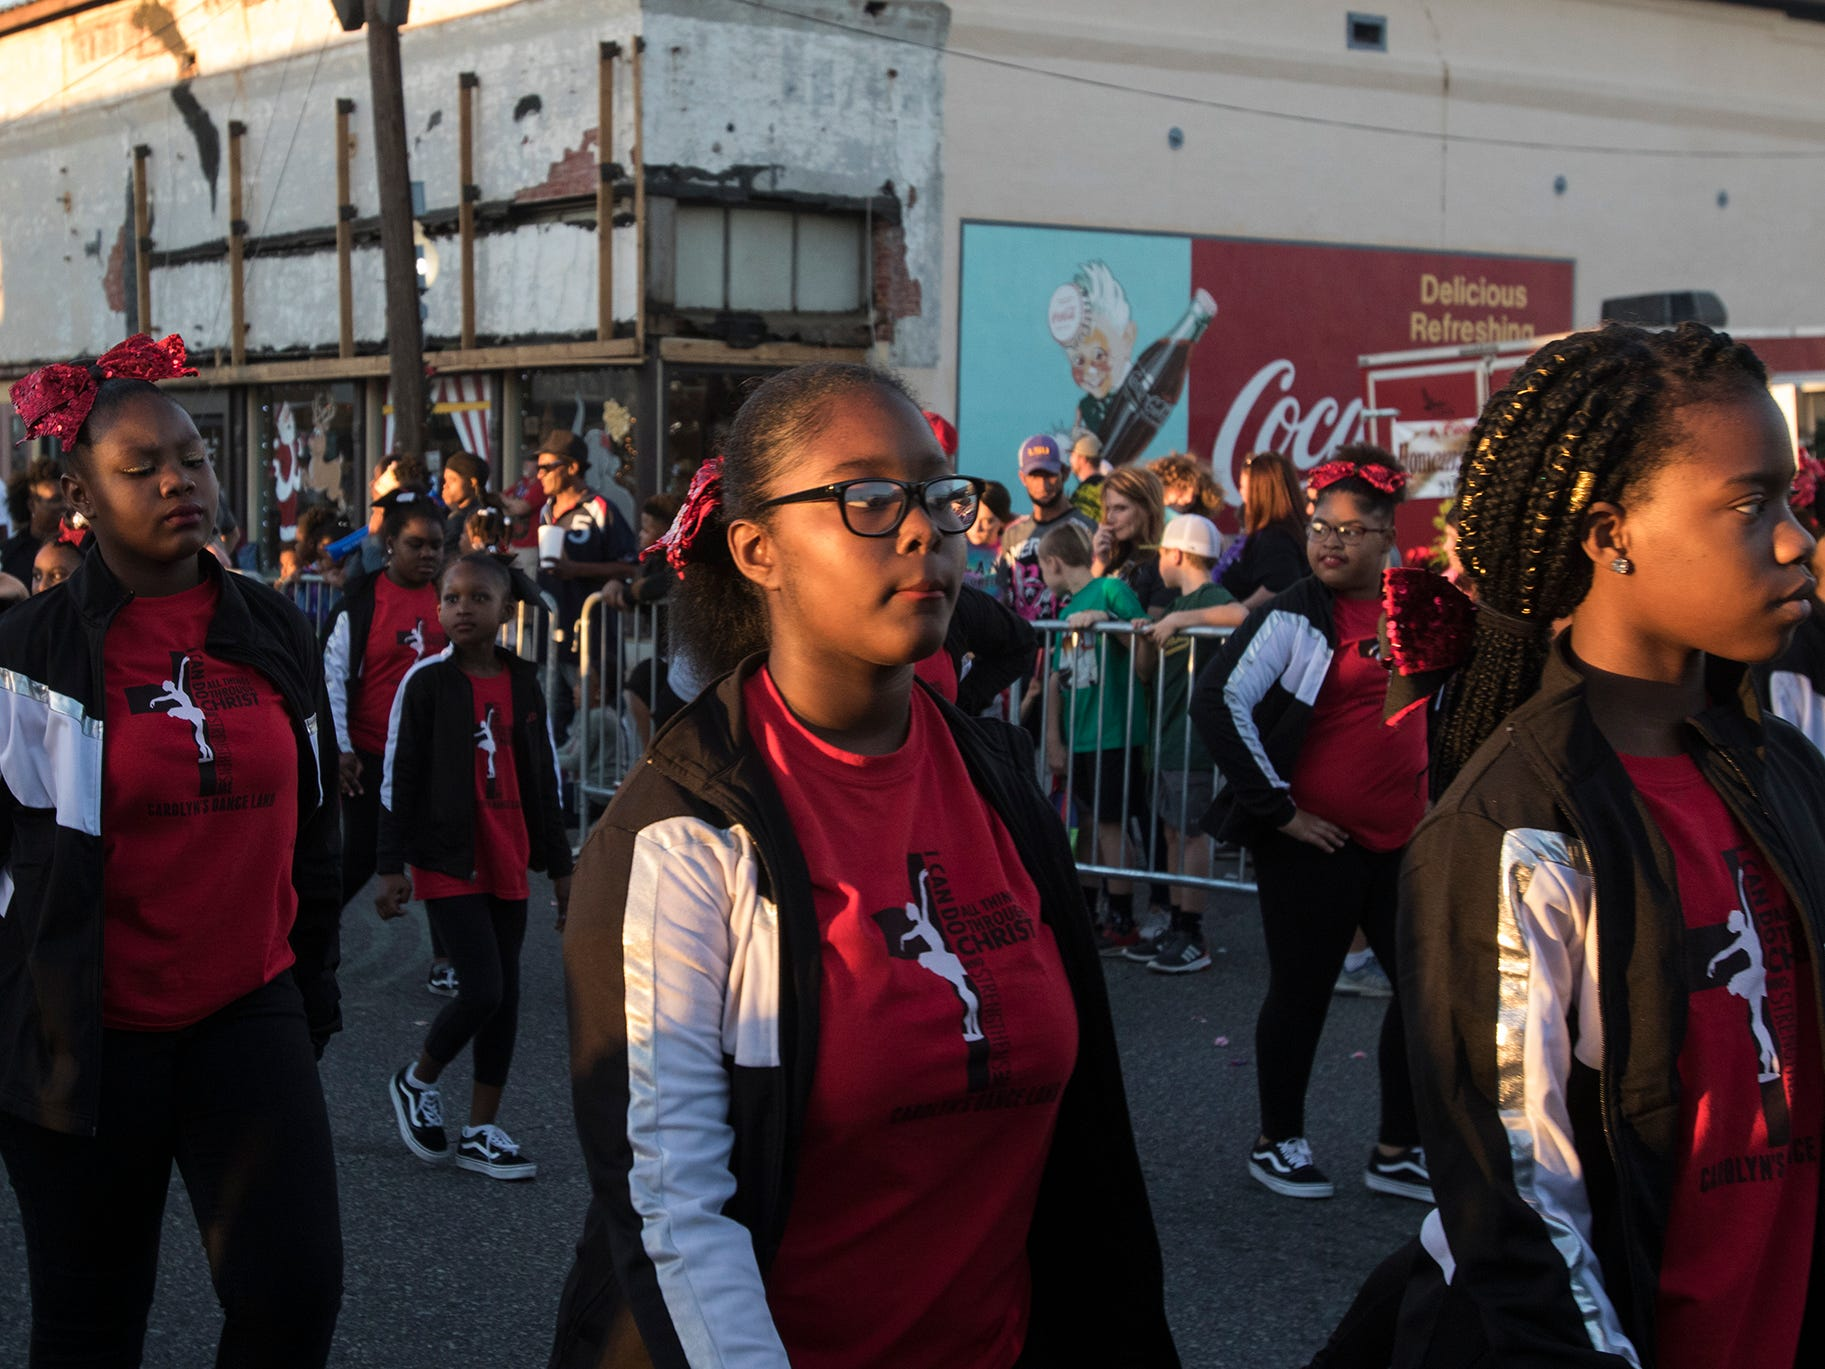 Monroe and West Monroe held their annual parade through the downtown of both towns in La. on Dec. 1.